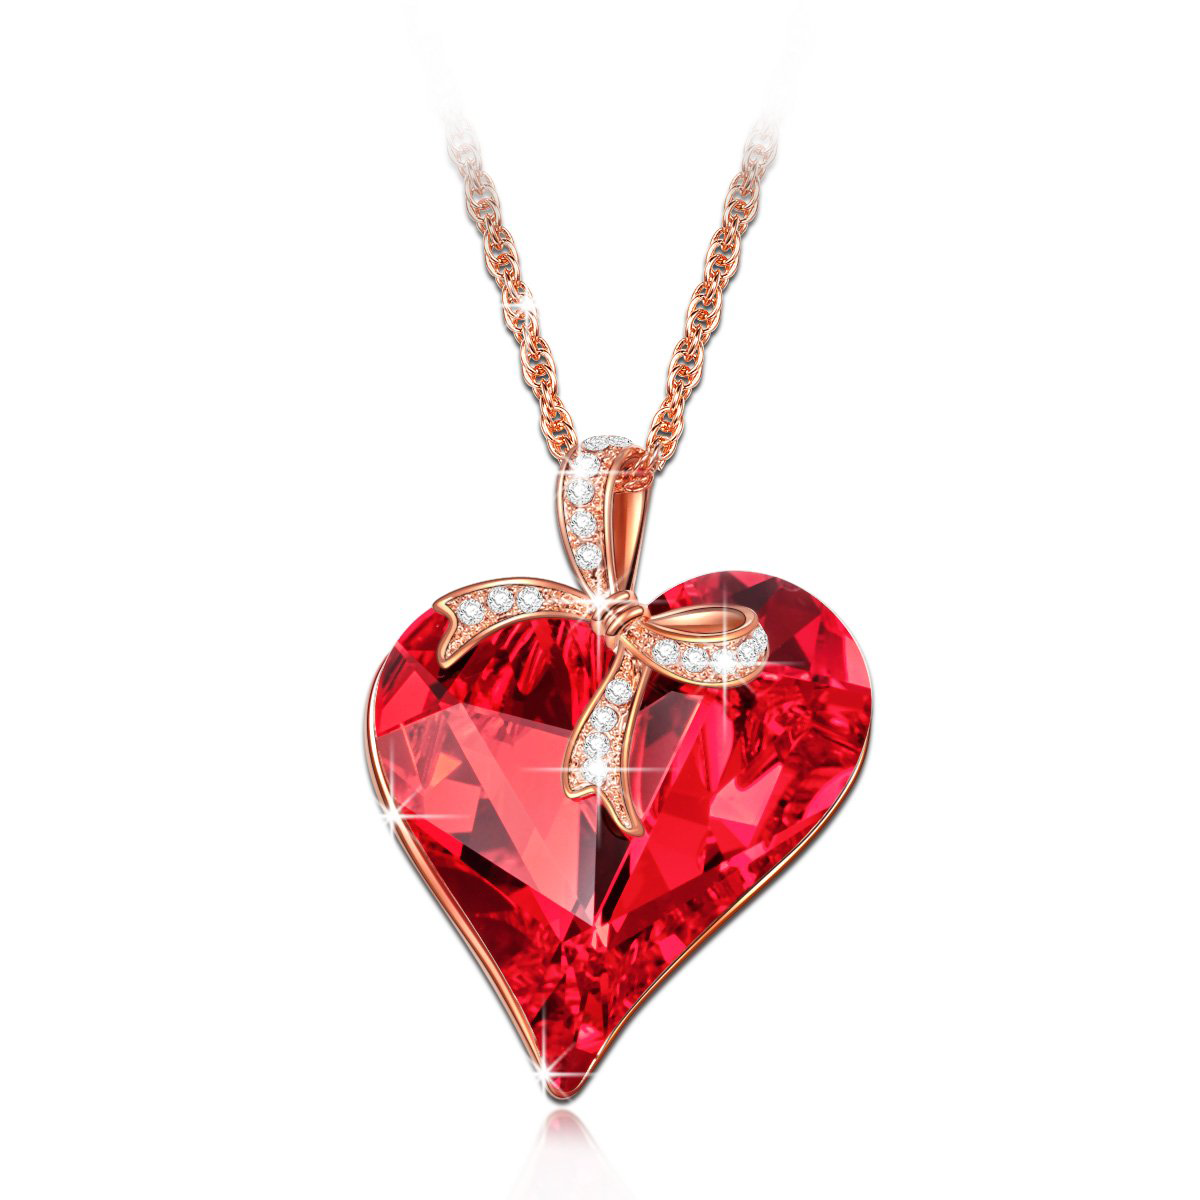 VALENTINES-DAY-HEART-NECKLACE